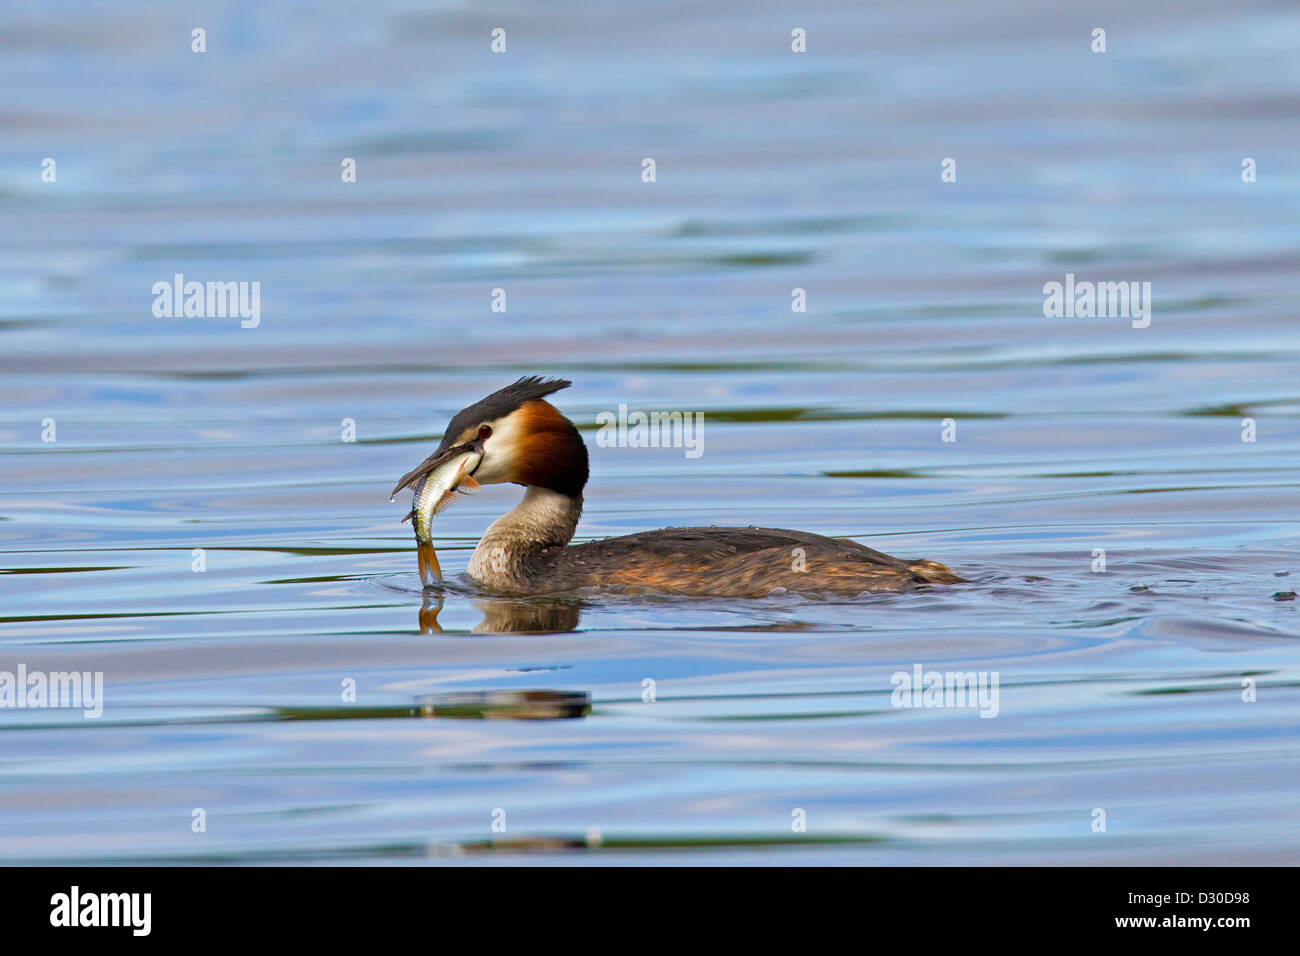 Great Crested Grebe (Podiceps cristatus) eating fish while swimming in lake - Stock Image